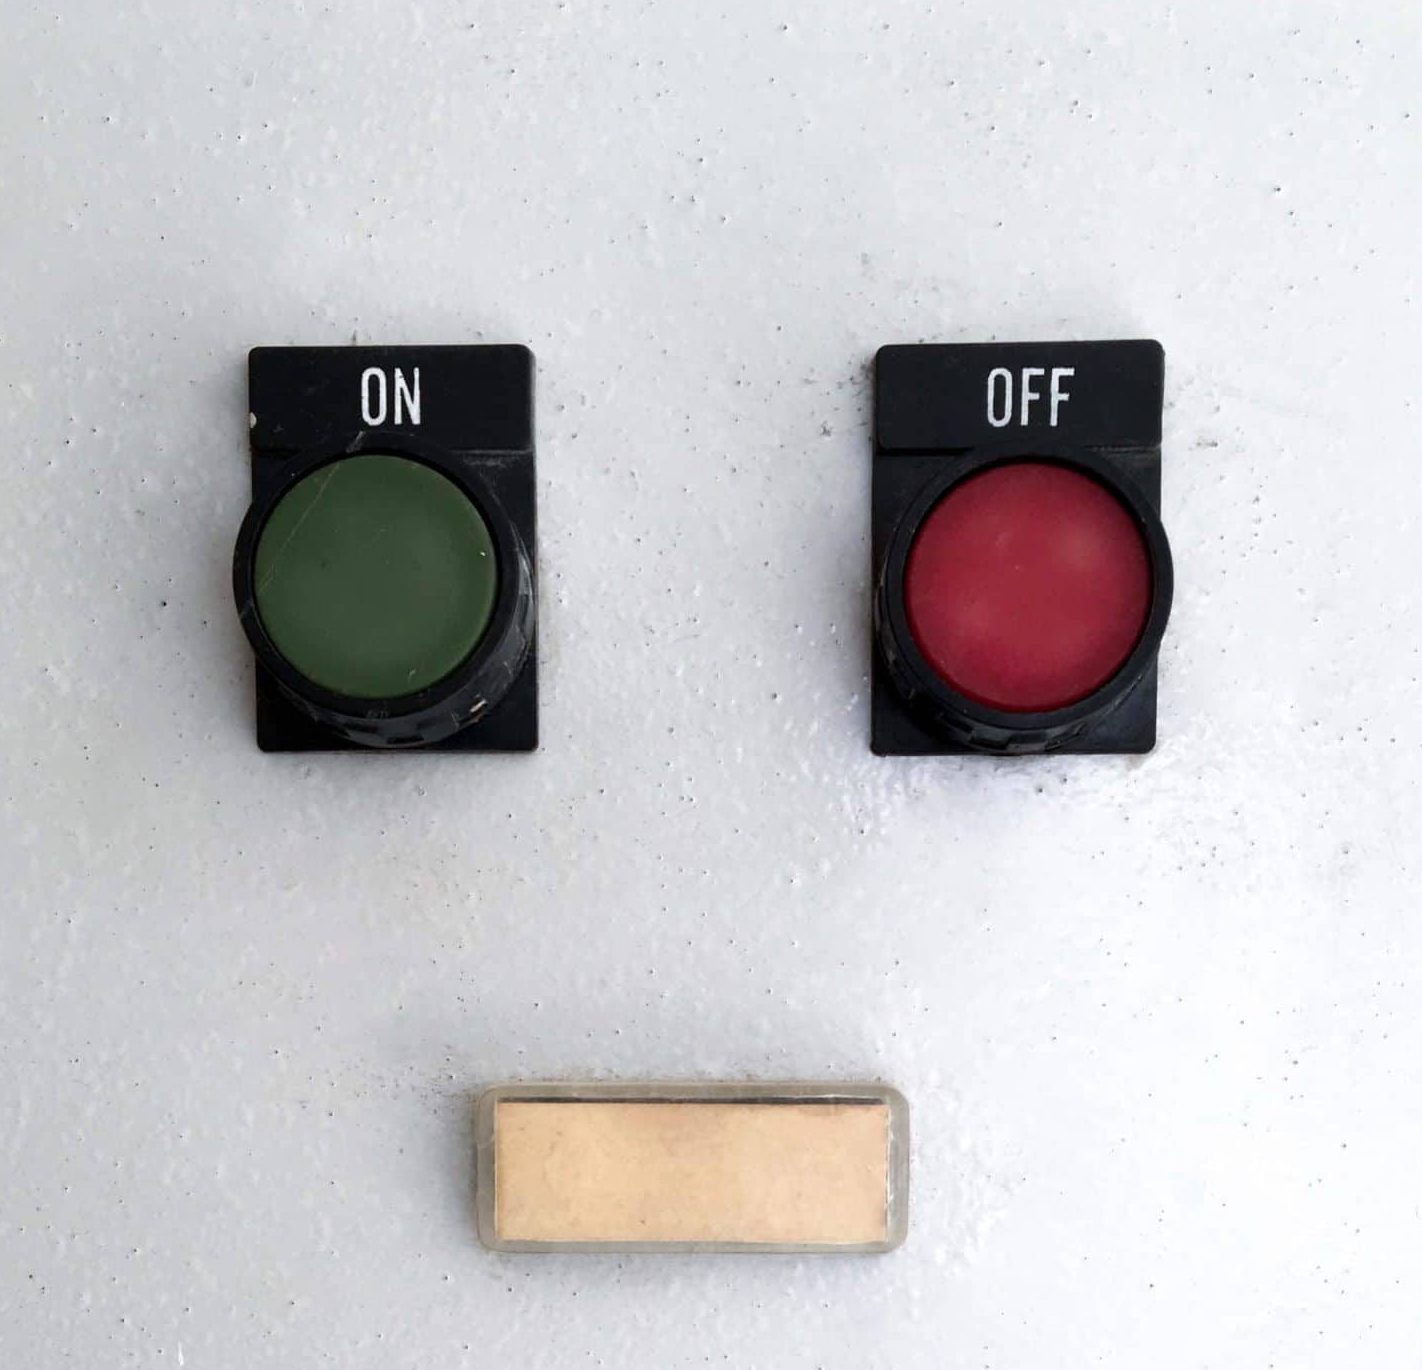 On / Off switch for switching HSA providers